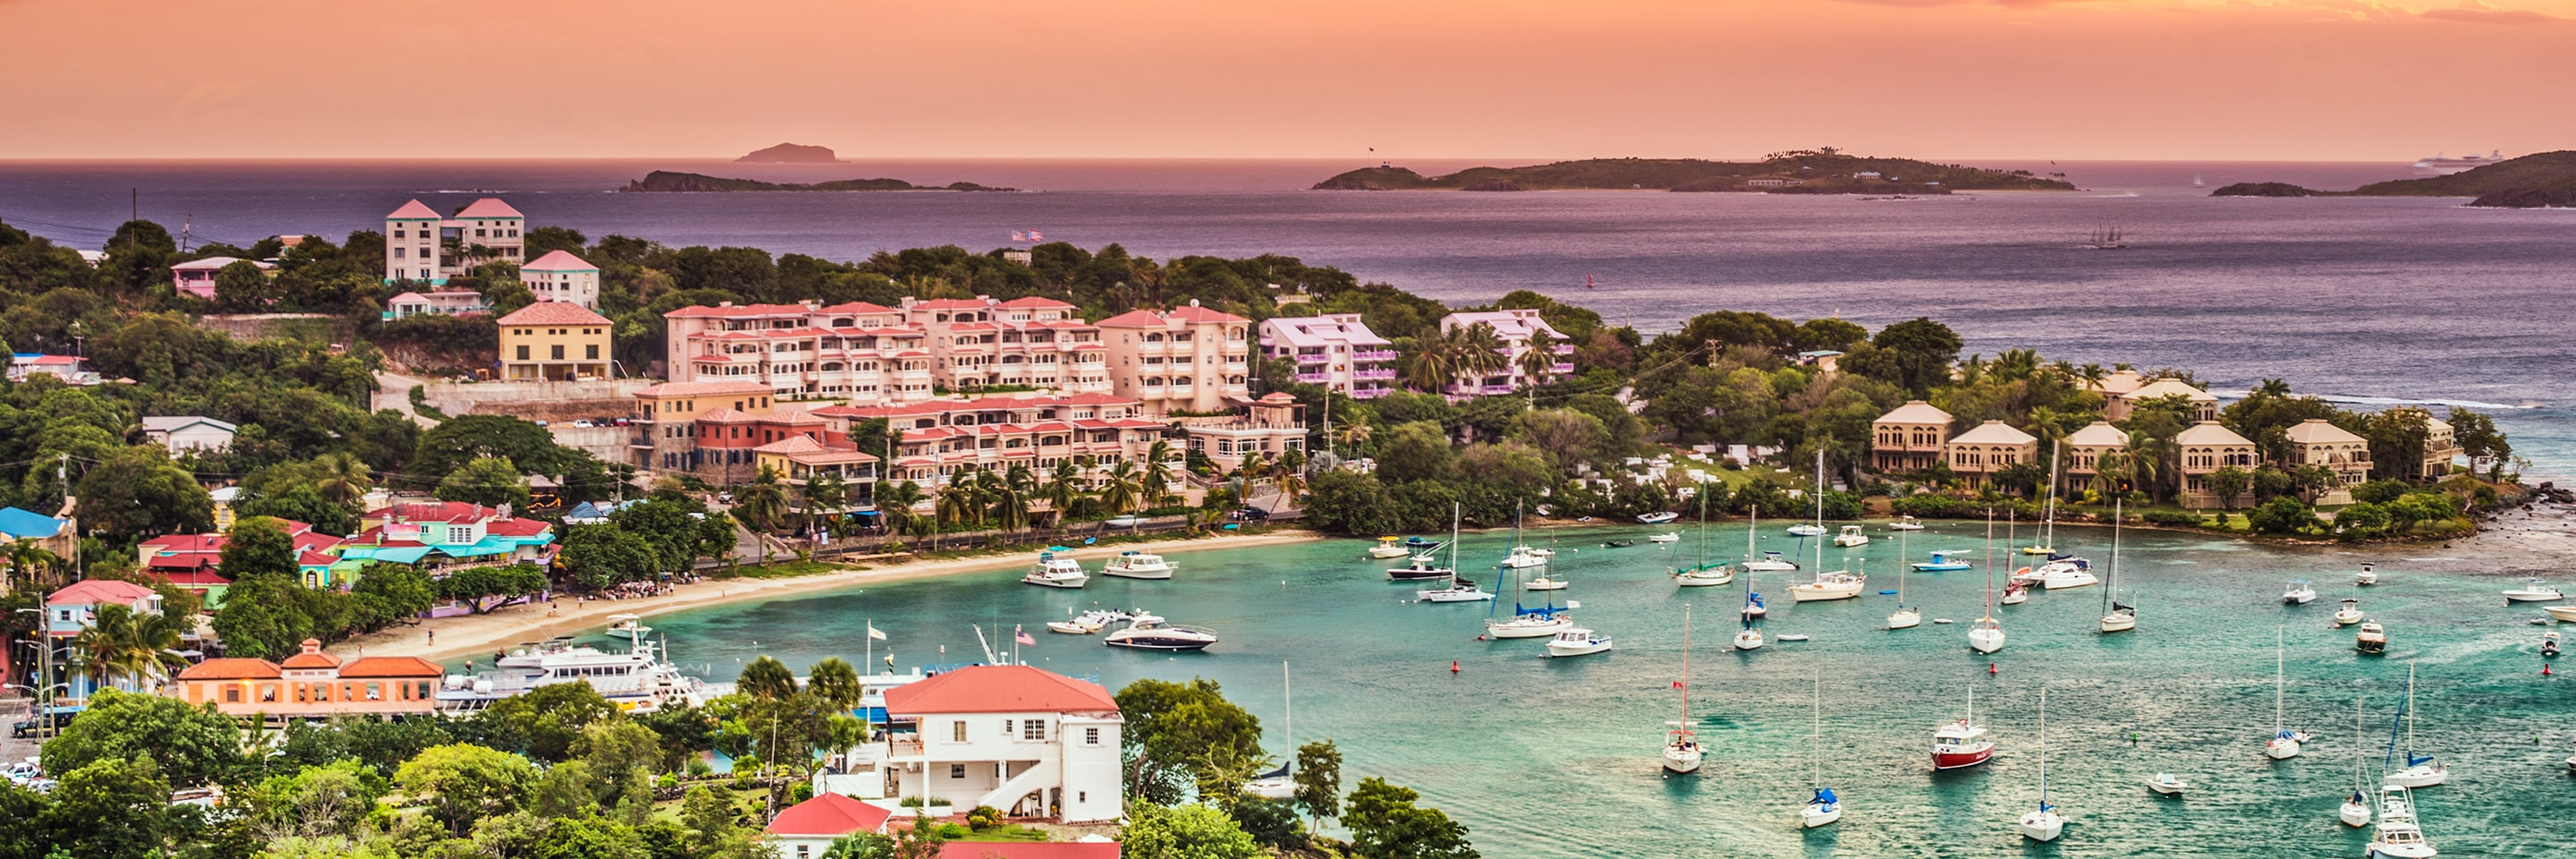 U.S. Virgin Island Hotels